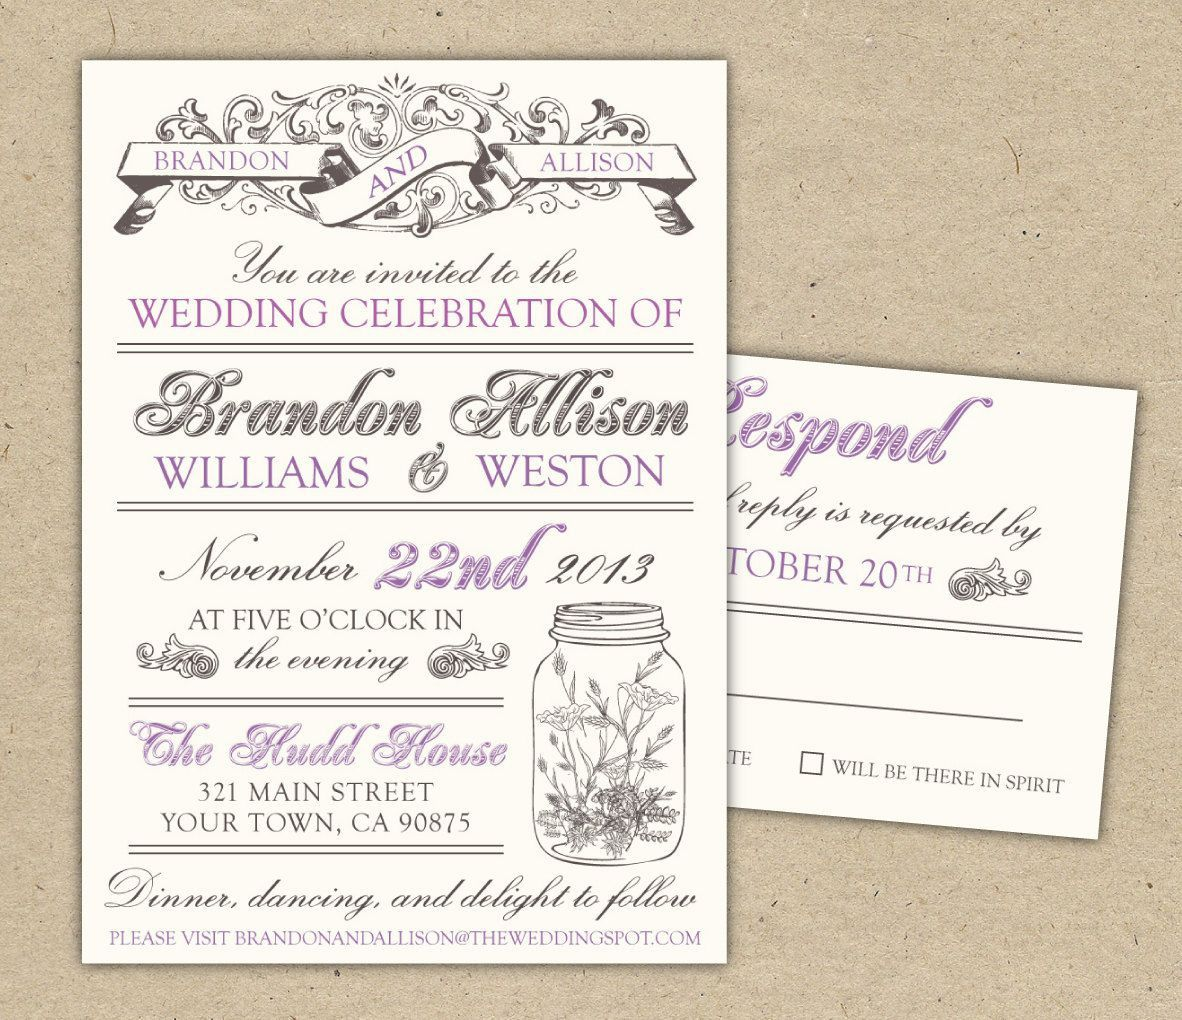 003 Stunning Free Wedding Invitation Template Design  Printable Download Wording Uk FormatFull